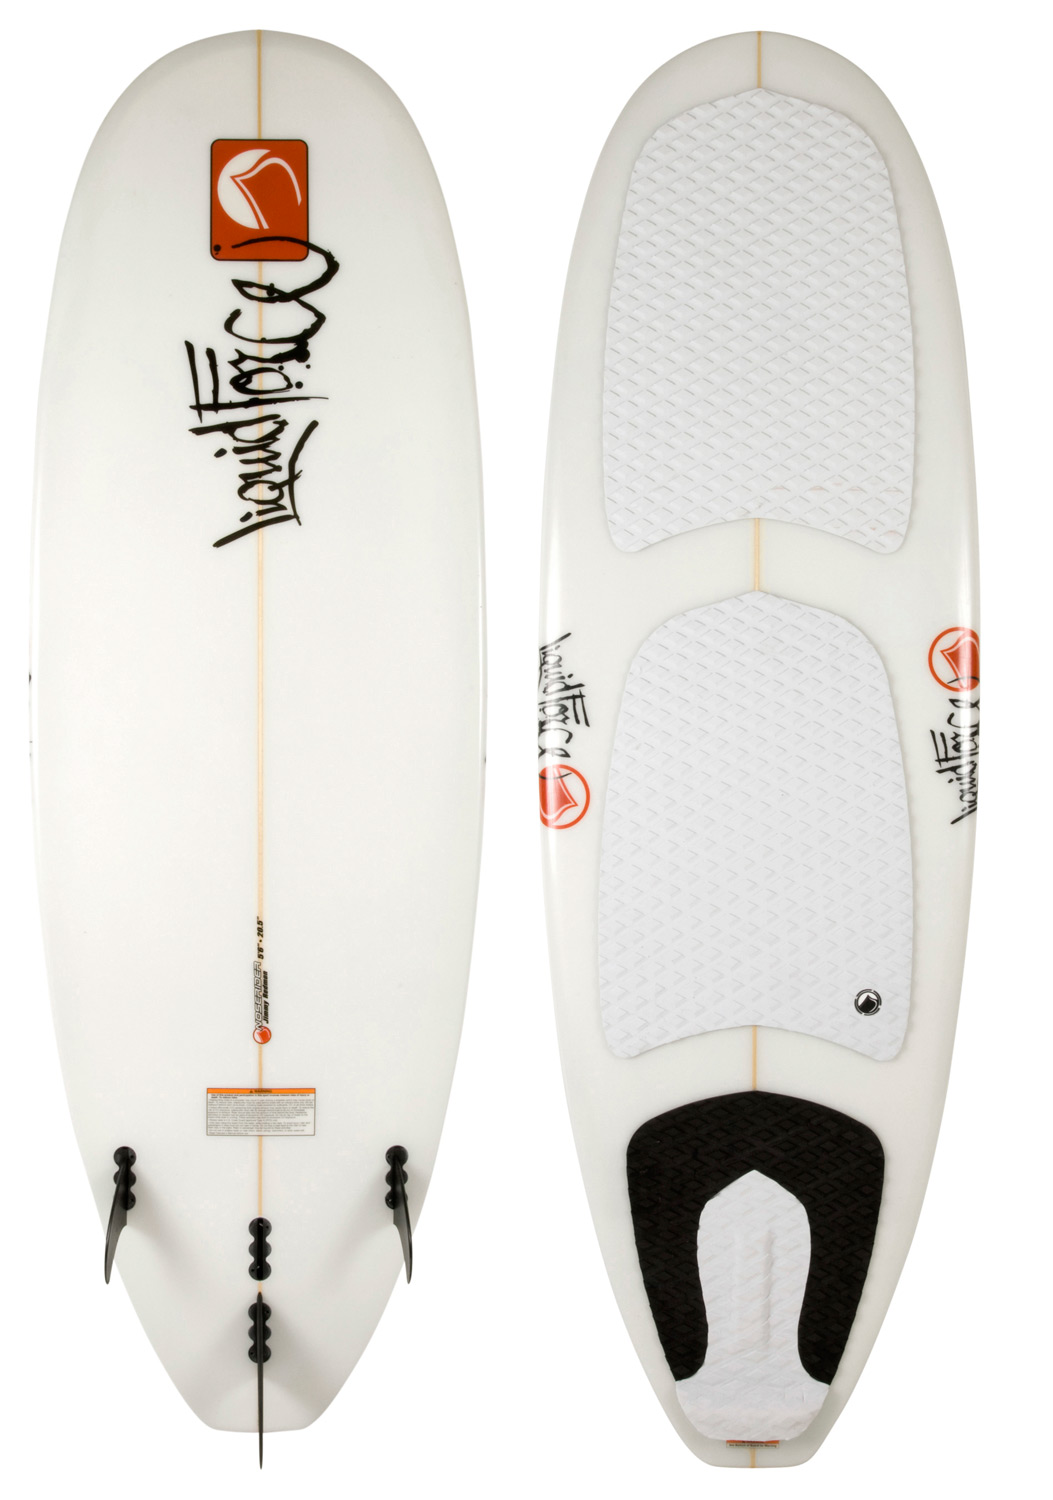 Skateboard Featuring a true longboard shape & style, the Nose-rider is ultra smooth... Whether you enjoy cruising, hanging ten or getting a bit more aggressive with your turns, this board will not disappoint. Great for the first timer looking to let go of the rope!Key Features of the Liquid Force Noserider Wakesurfer: Light Weight Hand Shaped Core: Faithfully re-creating Jimmy's original master...Light and just right. Full Nose Outline with Concave: Nose ride with control, lift and glide! Double Concave Hull: The concave provides lift and acceleration that keeps you in the wake. 2+1 Fin Removable Set-Up: Move the center fin up or back for the turning radius you want. Outside side fins can be removed for added speed and looseness. Full Deck EVA Grooved Traction Pads: From nose to tail, you have sure footed control and grip - $499.99